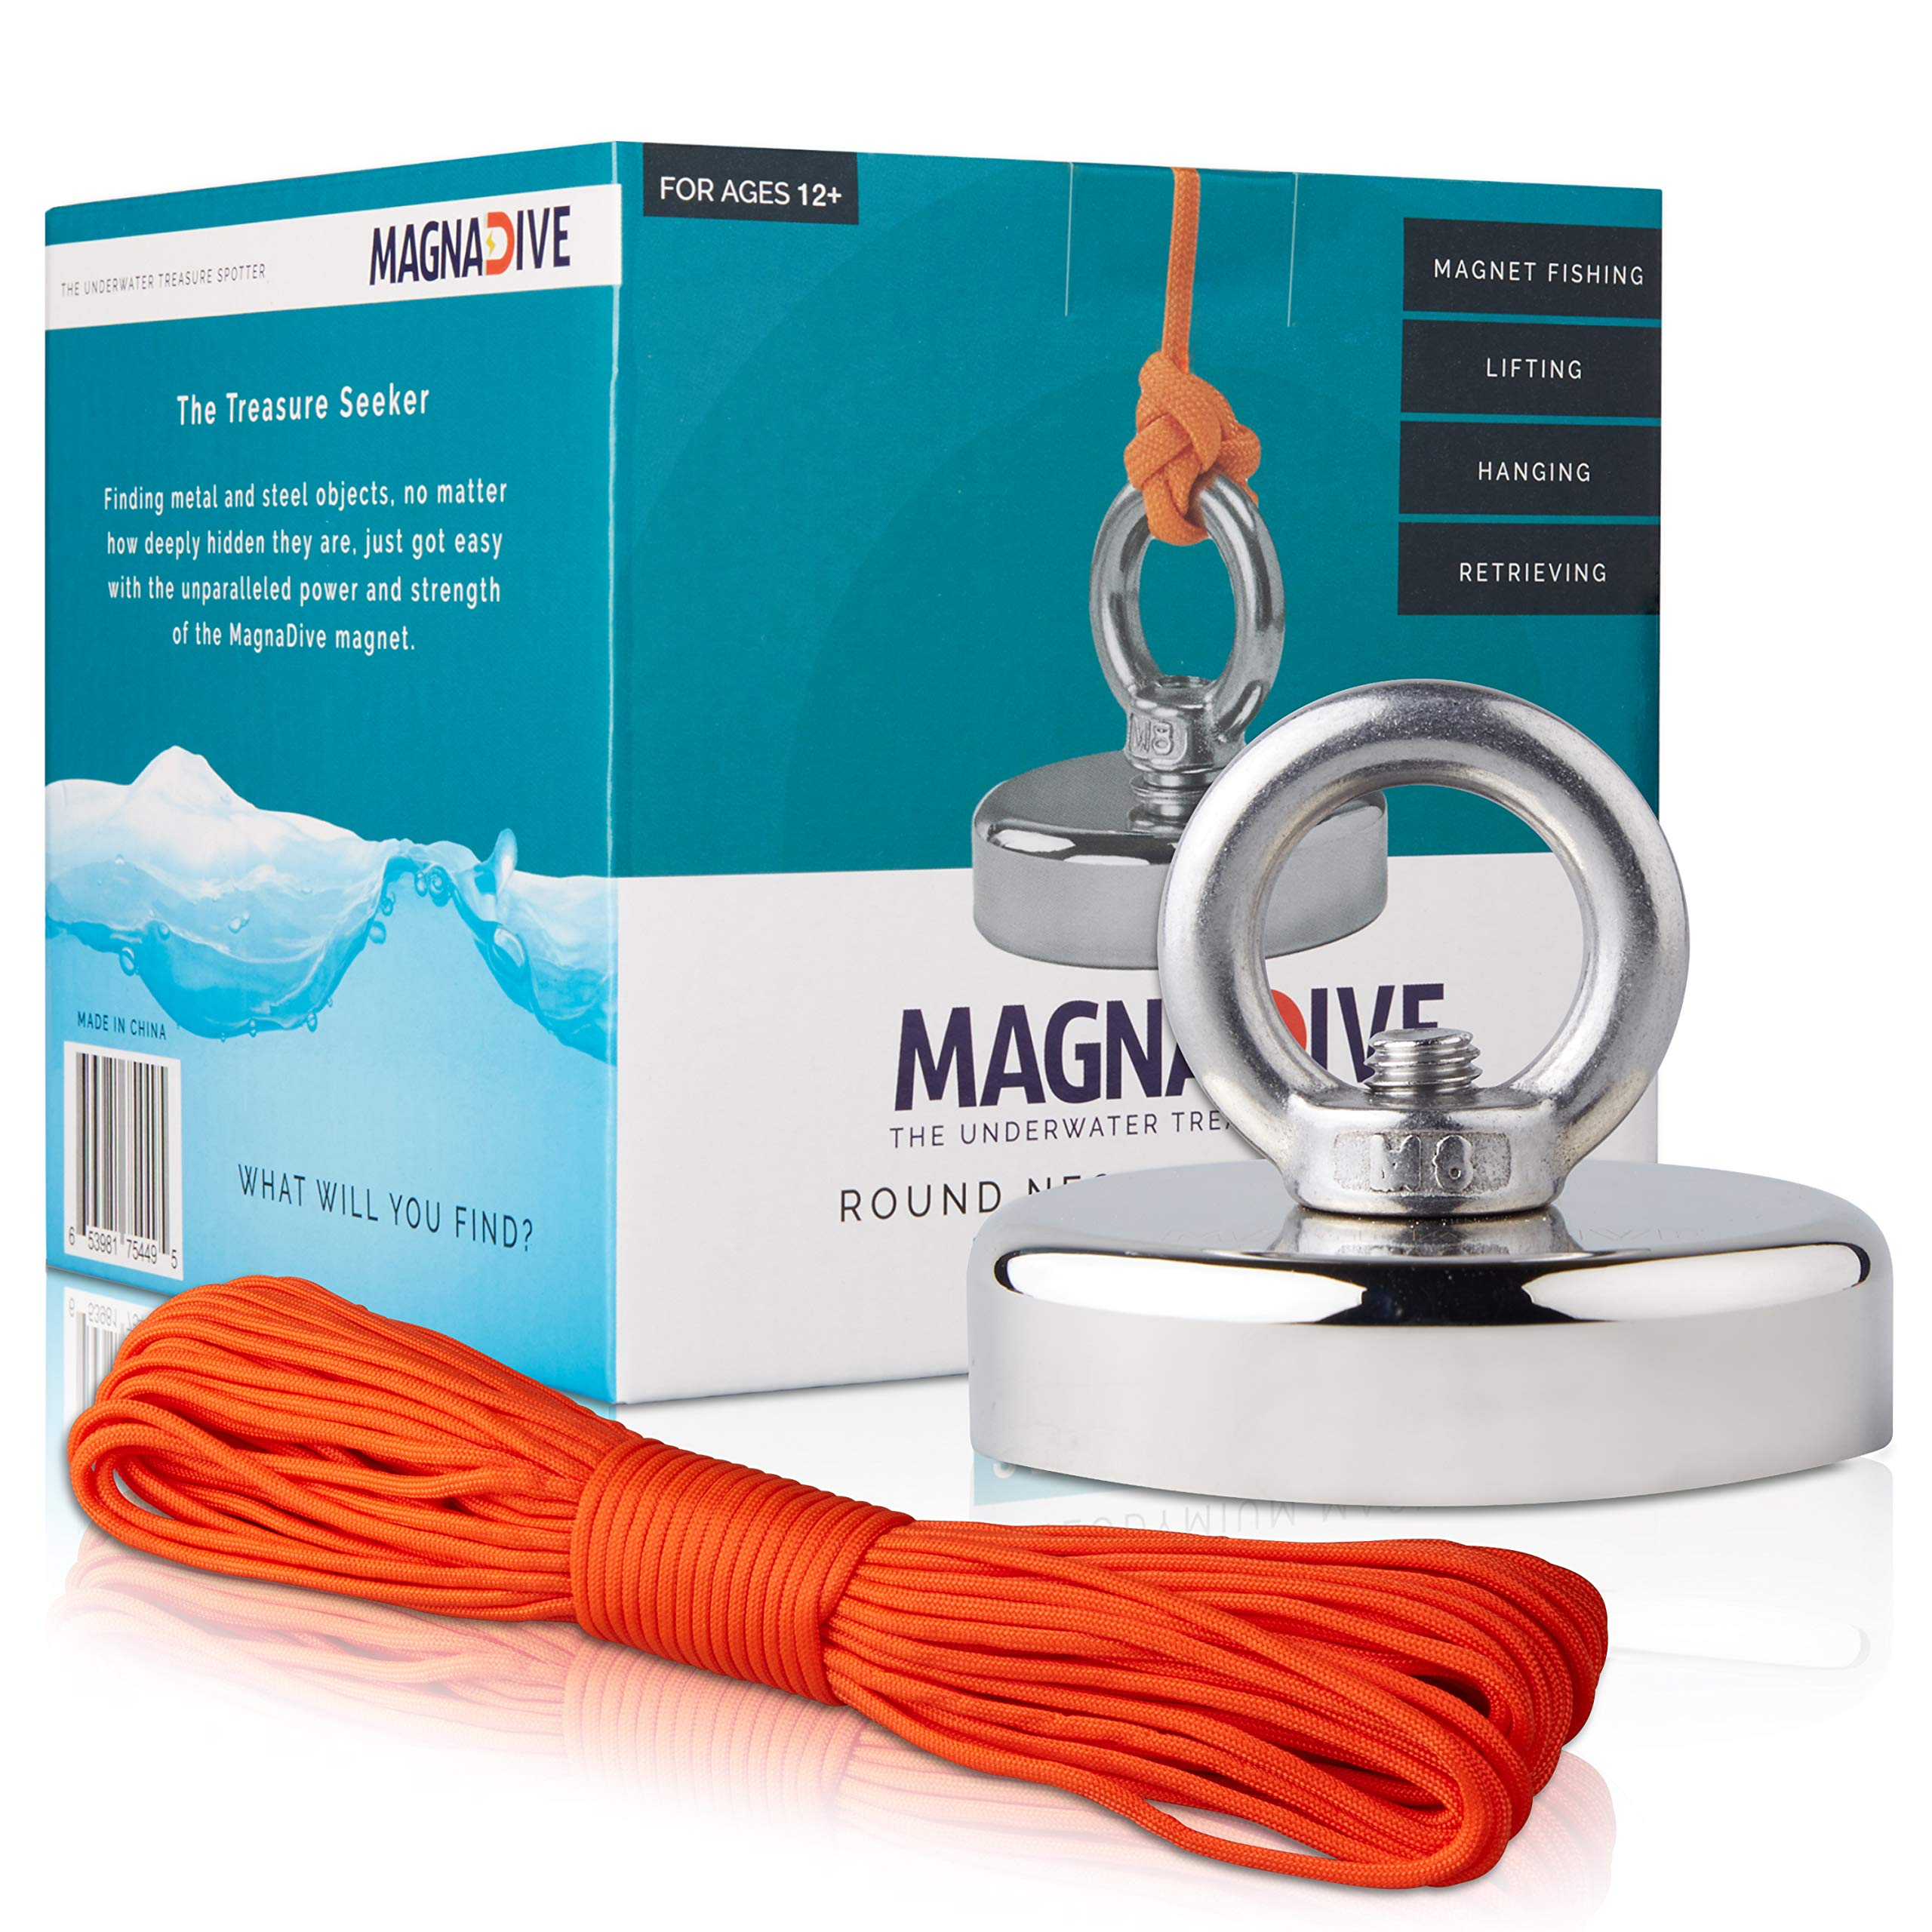 MAGNADIVE Fishing Magnet with Rope - 250 LBS Pulling Force Super Strong Neodymium Magnet - with Eyebolt and Countersunk Hole - and Nylon Paracord 100 ft. Long.